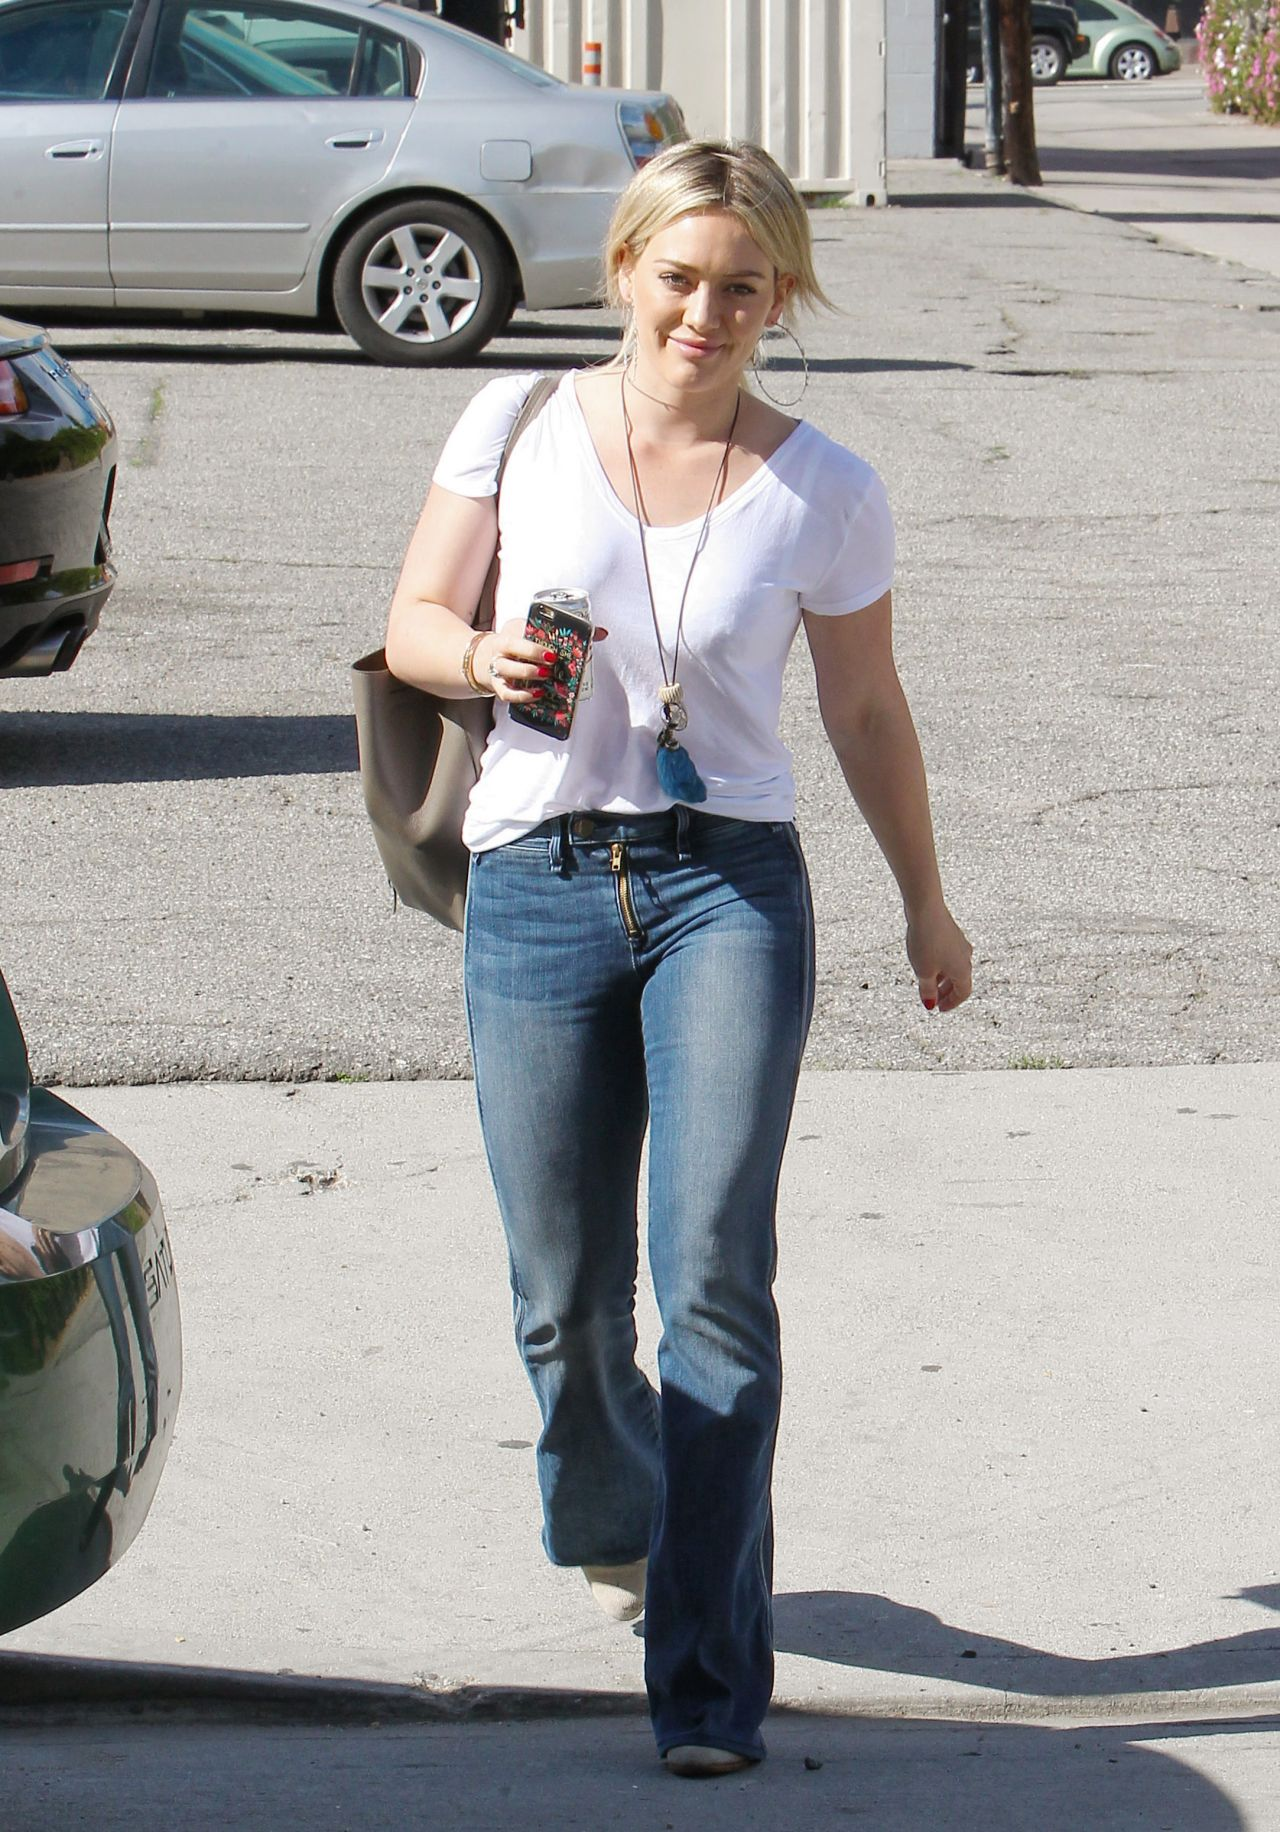 Hilary Duff In Jeans Out In Los Angeles February 2015